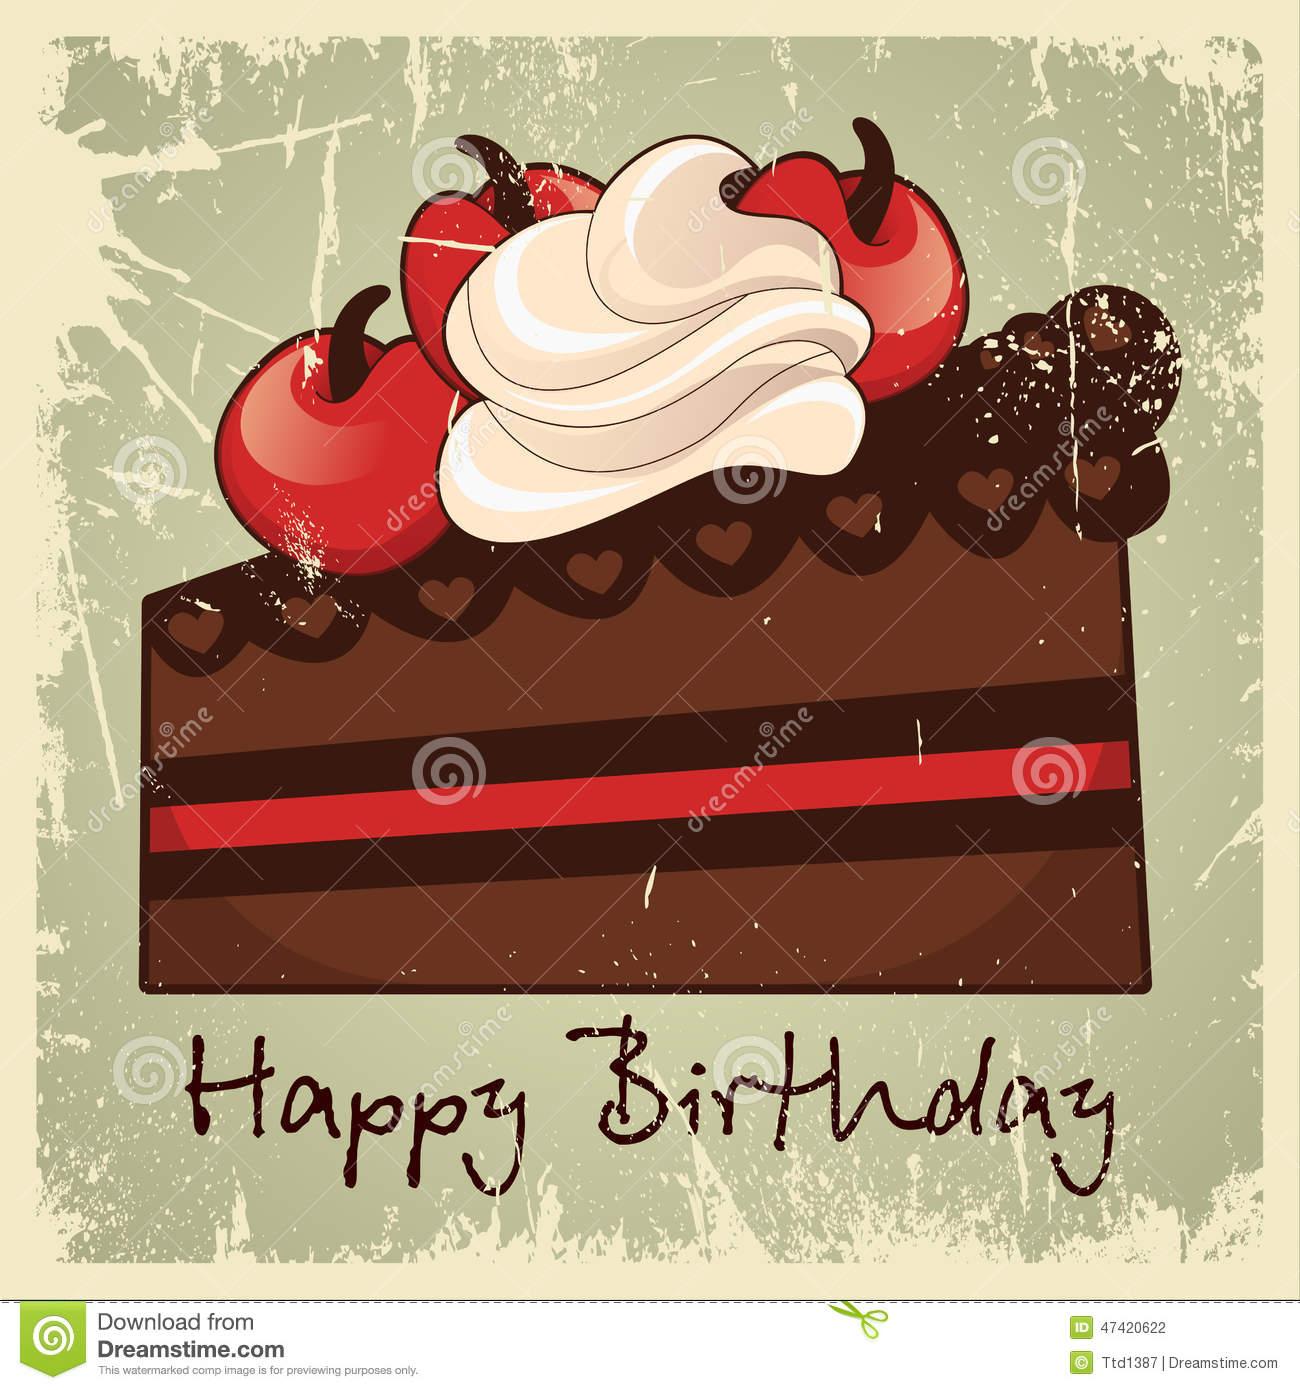 Cake Happy Birthday Vintage Stock Vector Illustration of event